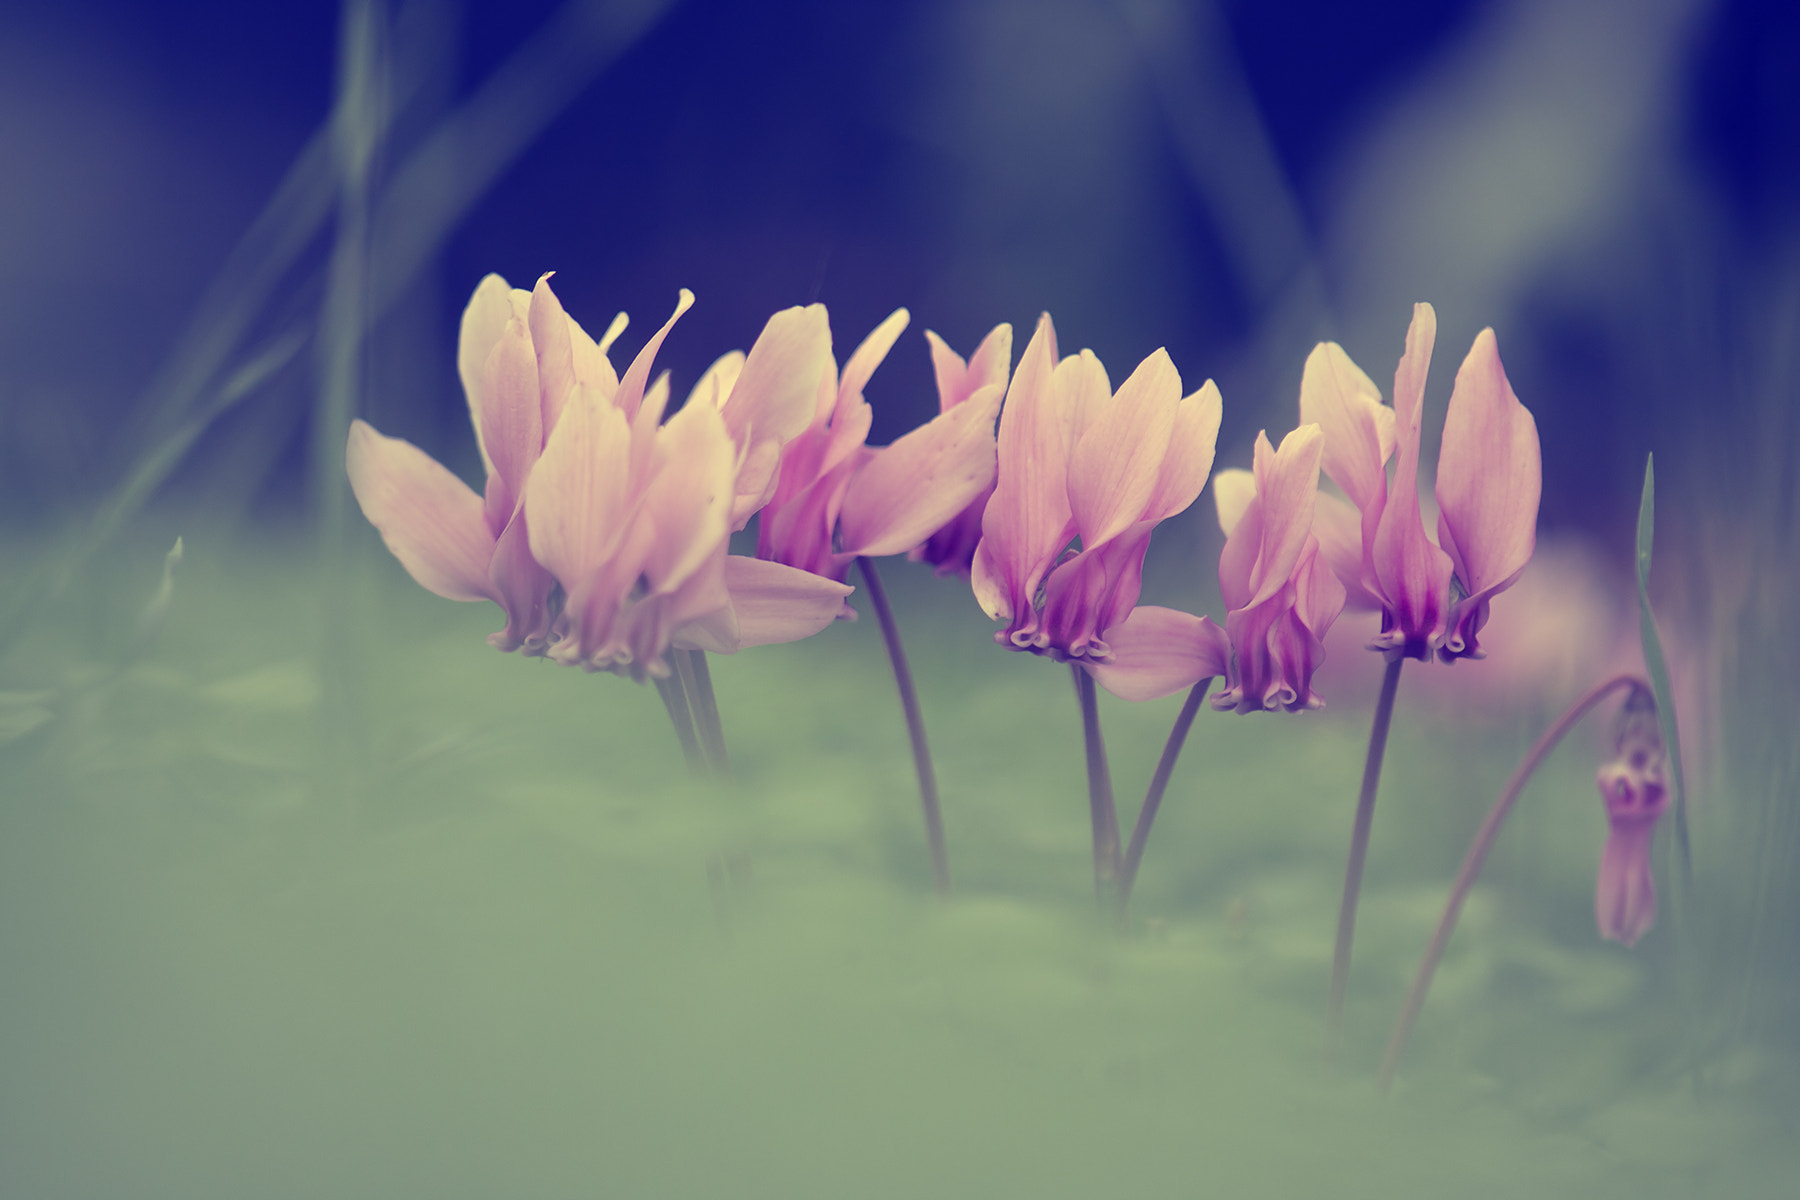 Photograph Ciclamini - Cyclamens by stefania mignardi on 500px